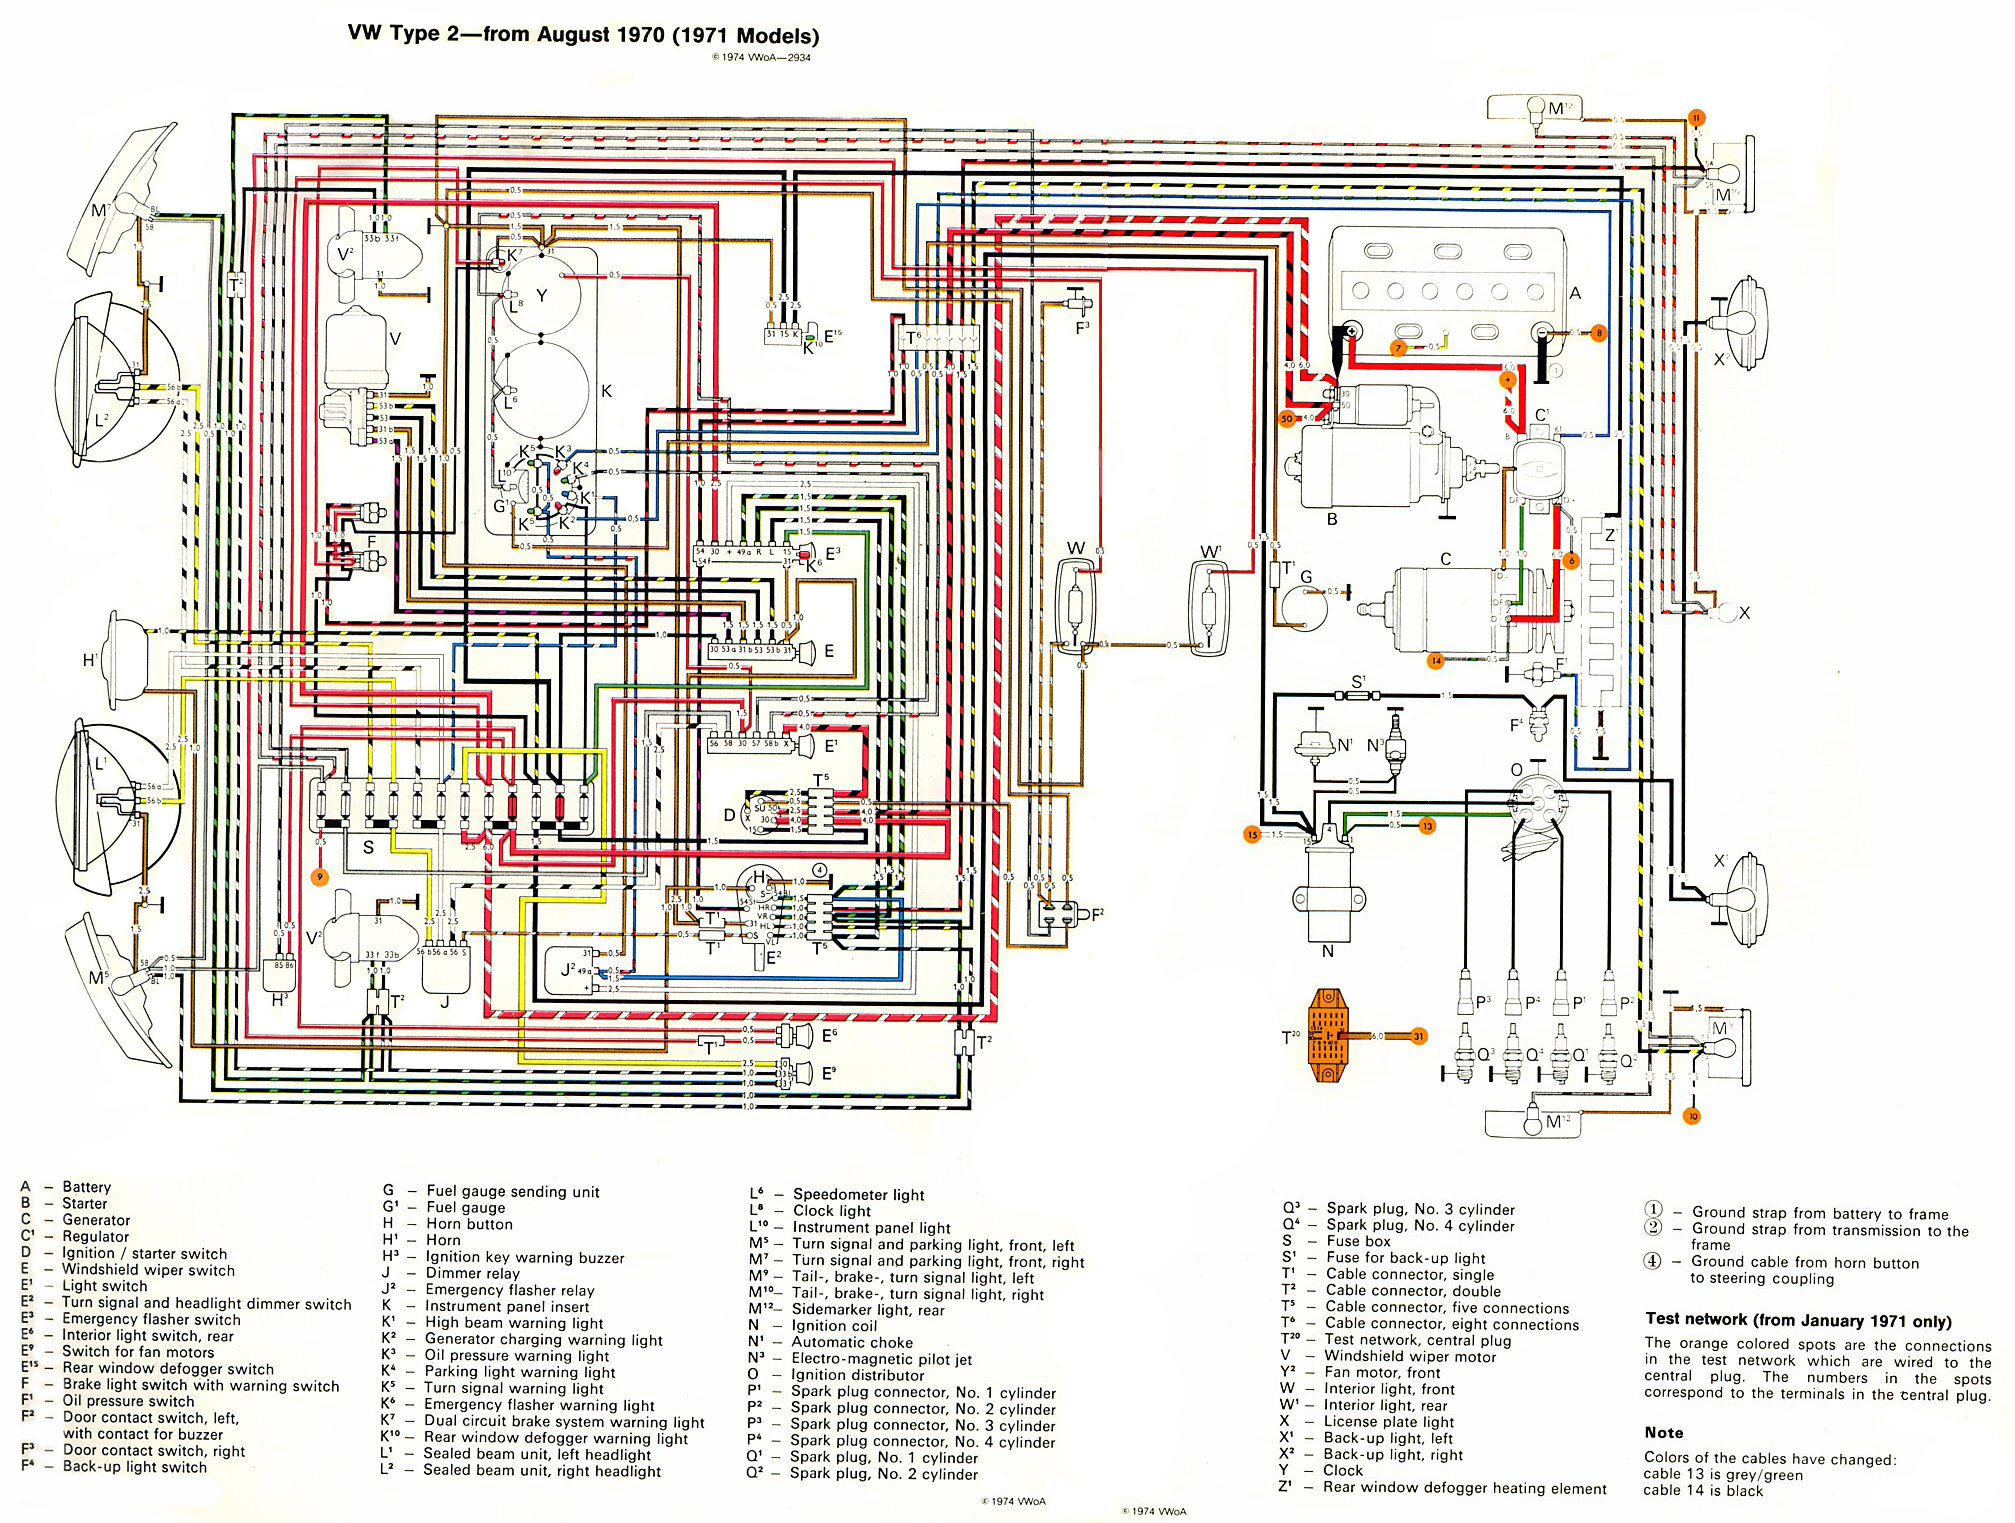 2008 Vw Golf Wiring Diagram Control Wico Magneto Schematic Experts Of U2022 Rh Evilcloud Co Uk